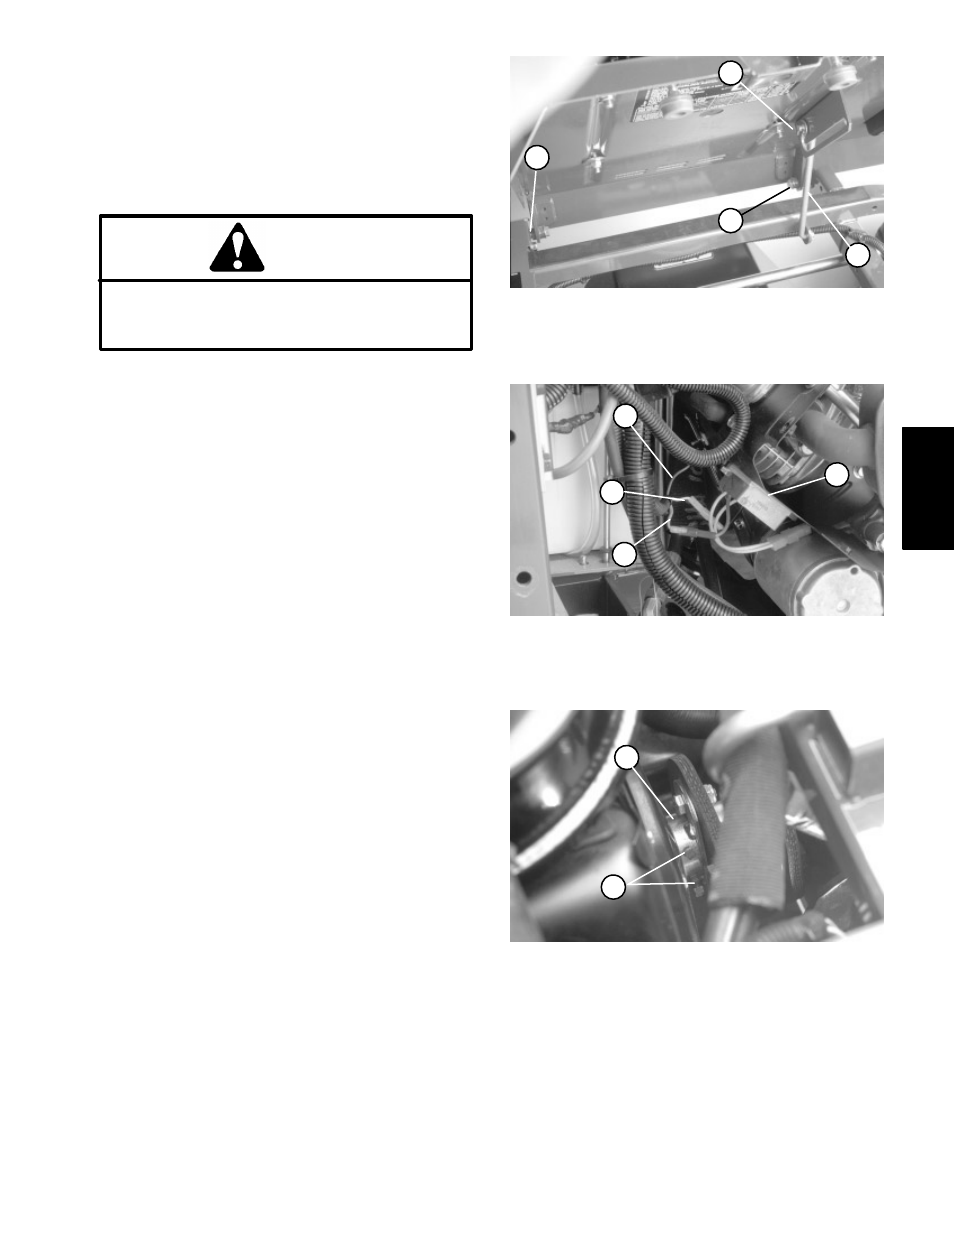 Caution Toro Sand Pro 5020 User Manual Page 47 170 Wire Harness